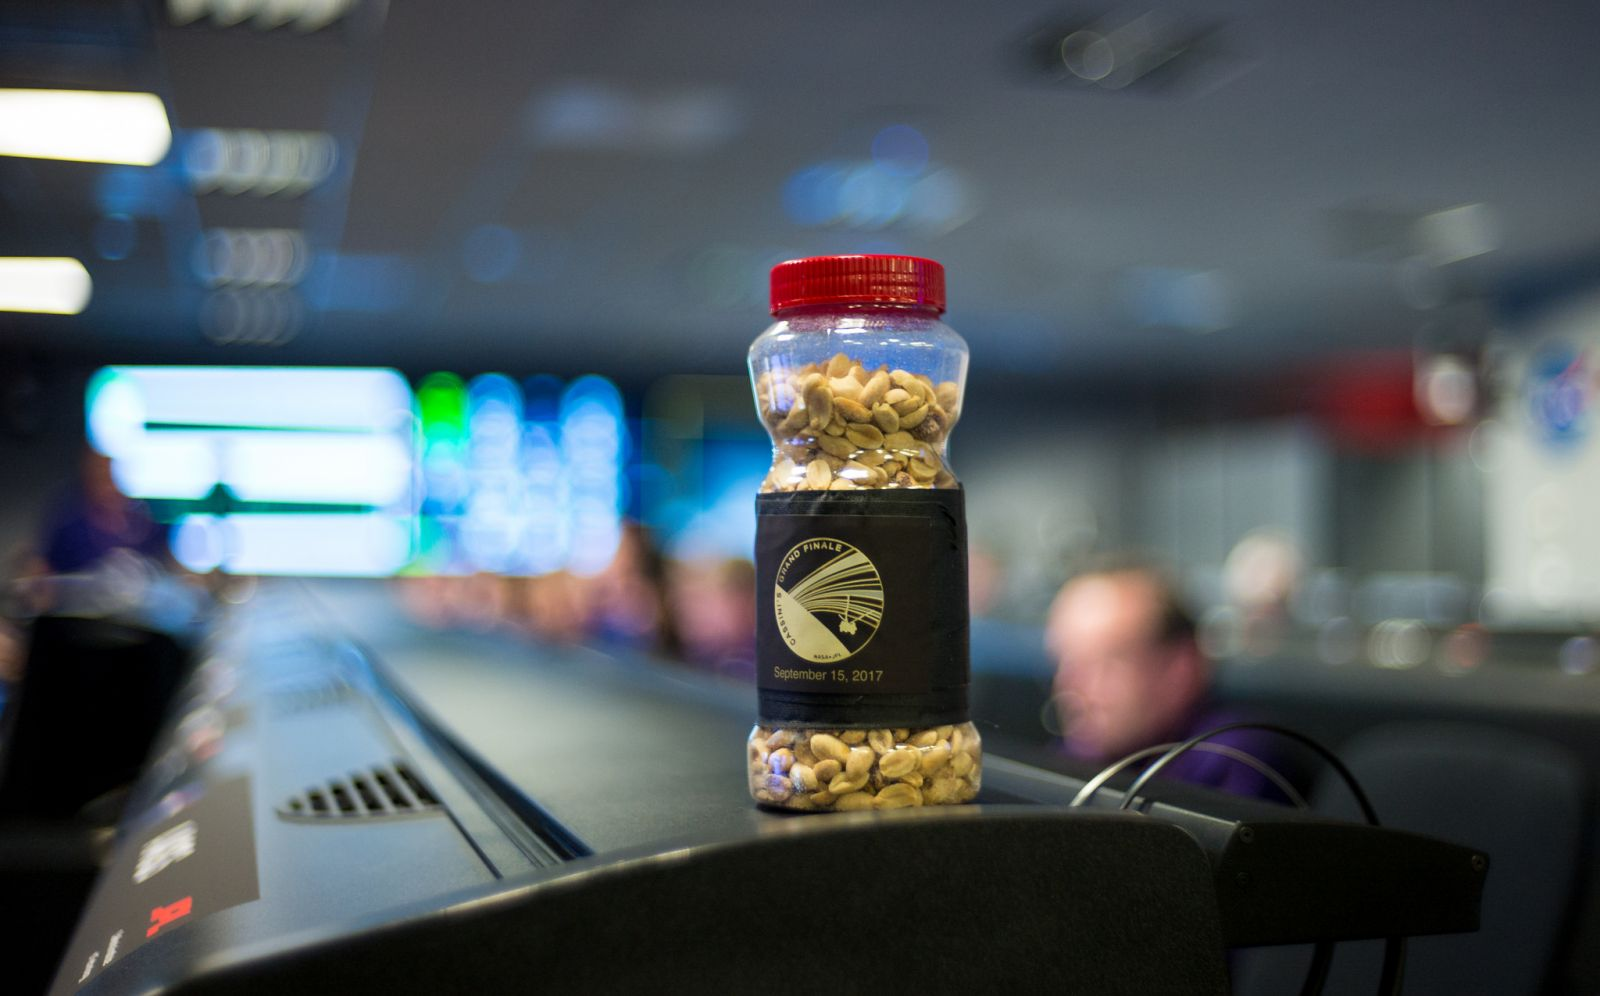 A jar of peanuts on a console in mission control of the Space Flight Operations Center as the Cassini mission team await the final downlink of the spacecraft's data recorder. Eating peanuts before a major mission event is tradition at JPL. Photo Credit: Joel Kowsky / NASA